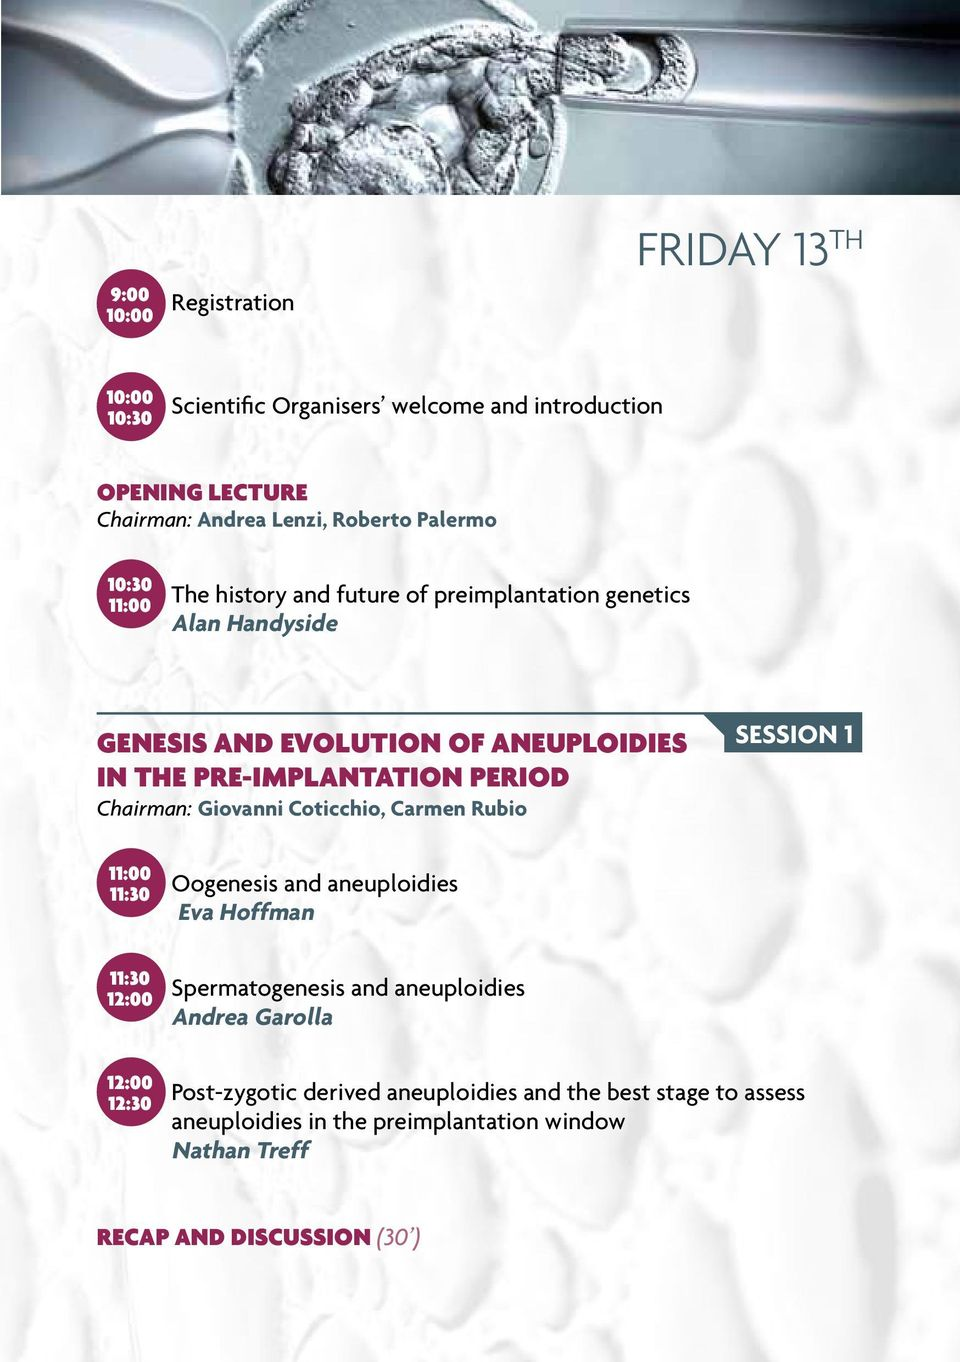 Chairman: Giovanni Coticchio, Carmen Rubio Session 1 11:00 11:30 Oogenesis and aneuploidies Eva Hoffman 11:30 12:00 Spermatogenesis and aneuploidies